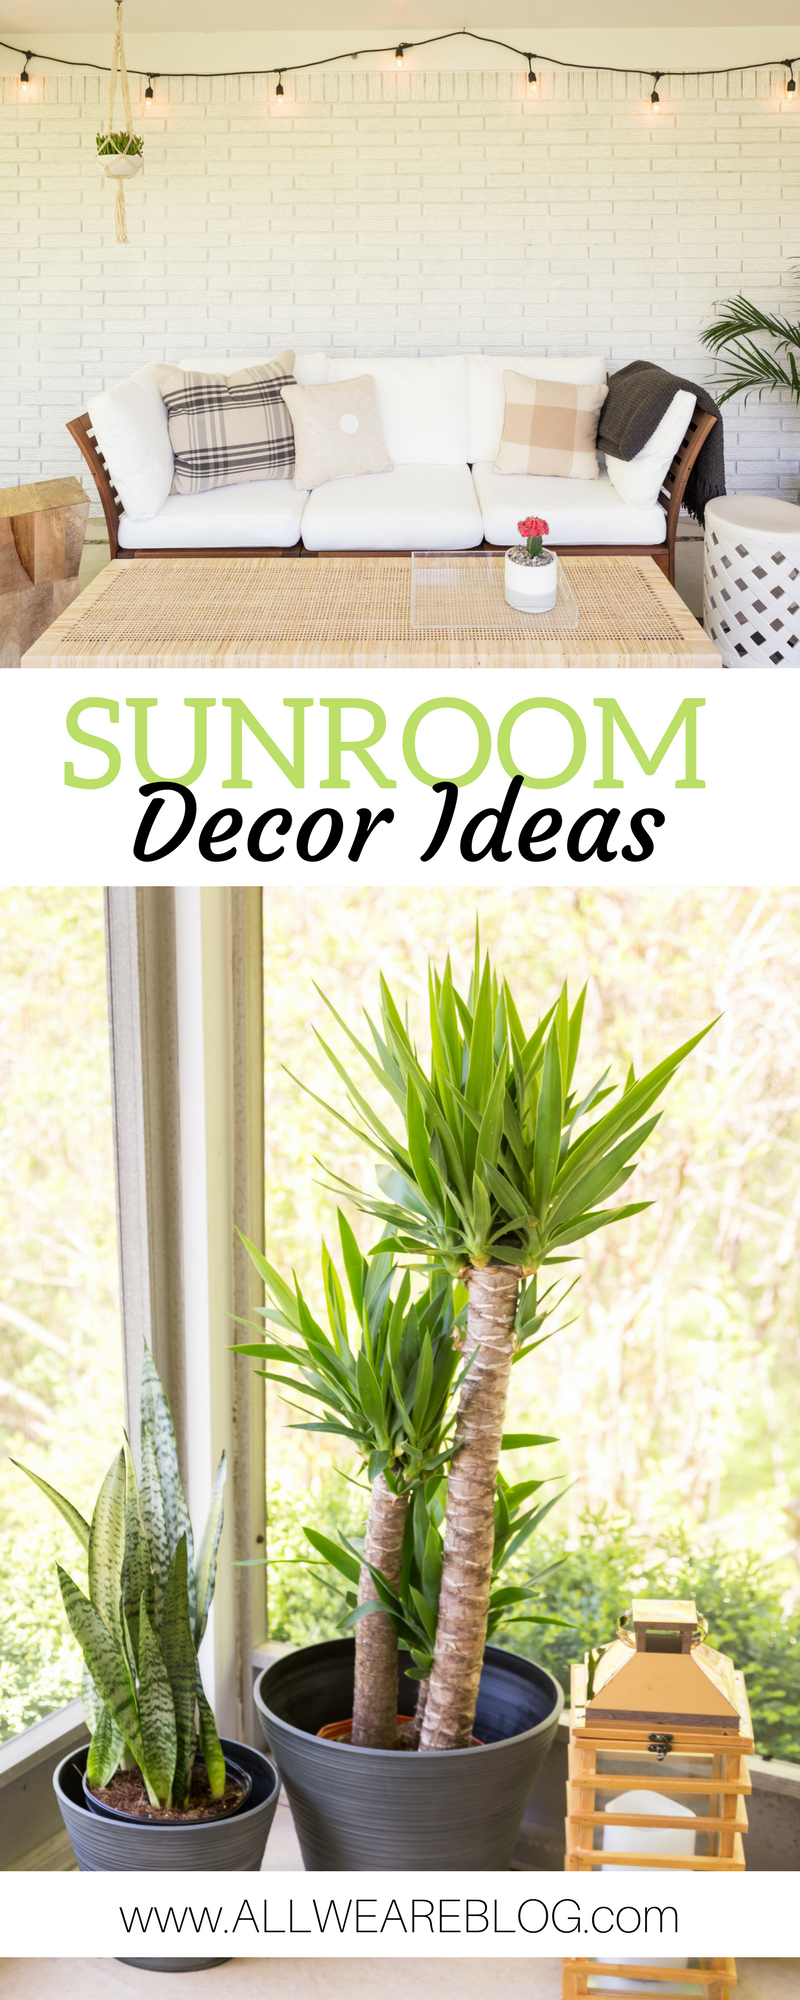 sunroom decor ideas